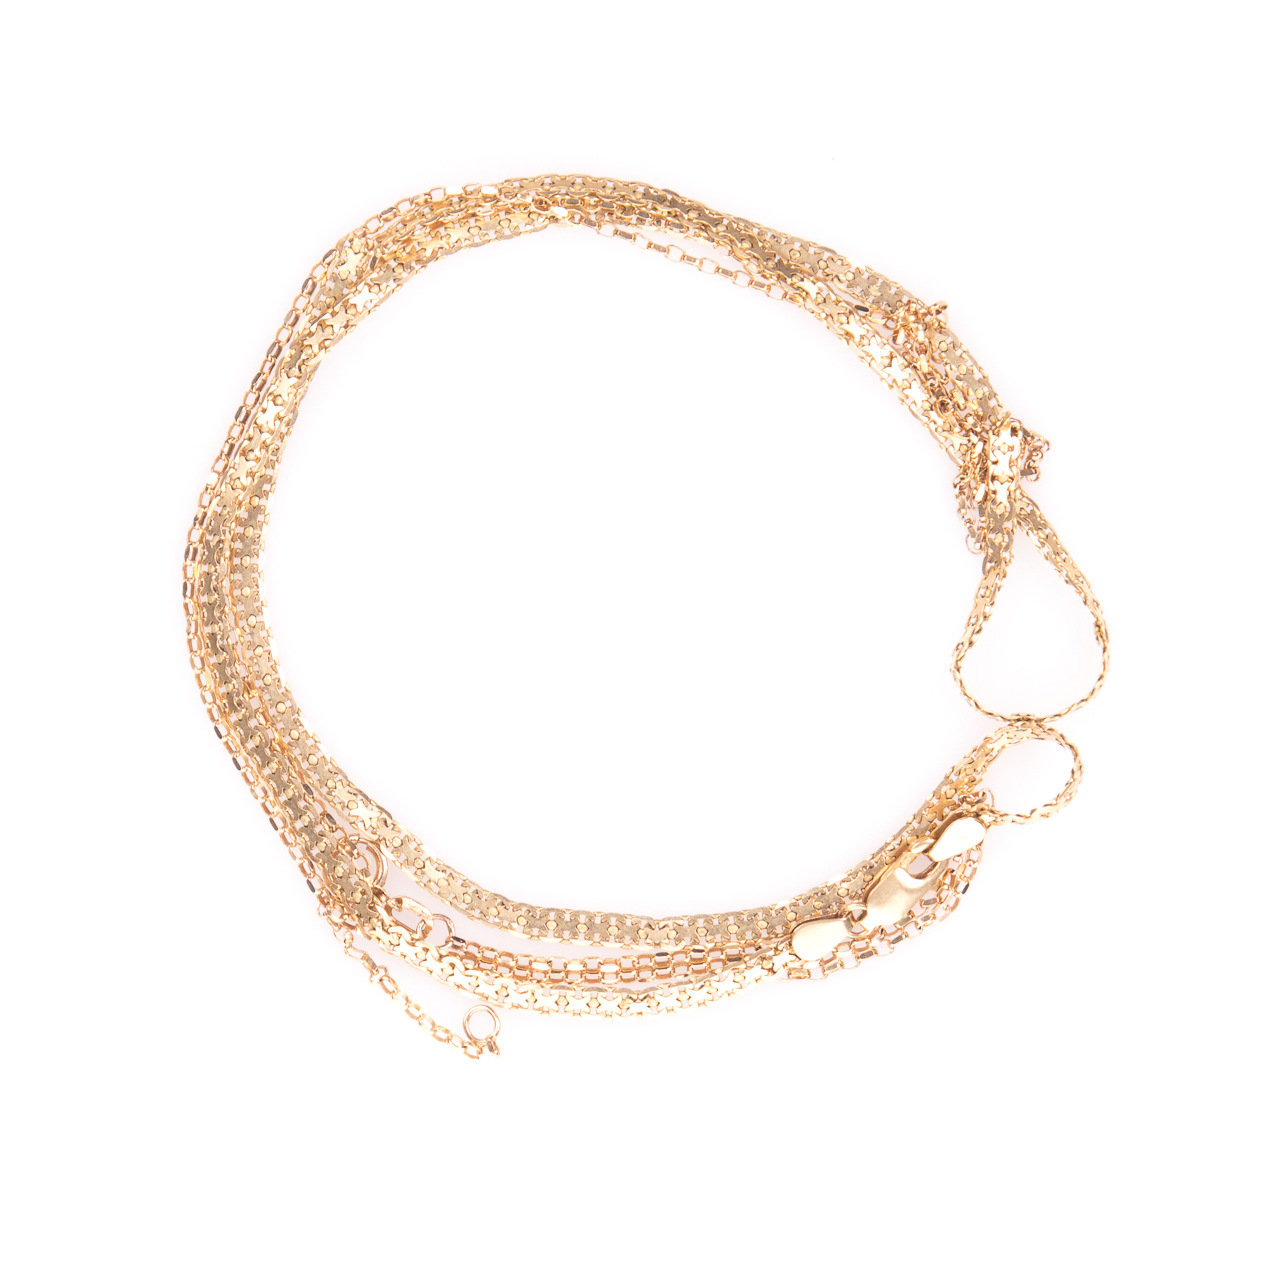 14ct Gold Necklace - Image 2 of 2